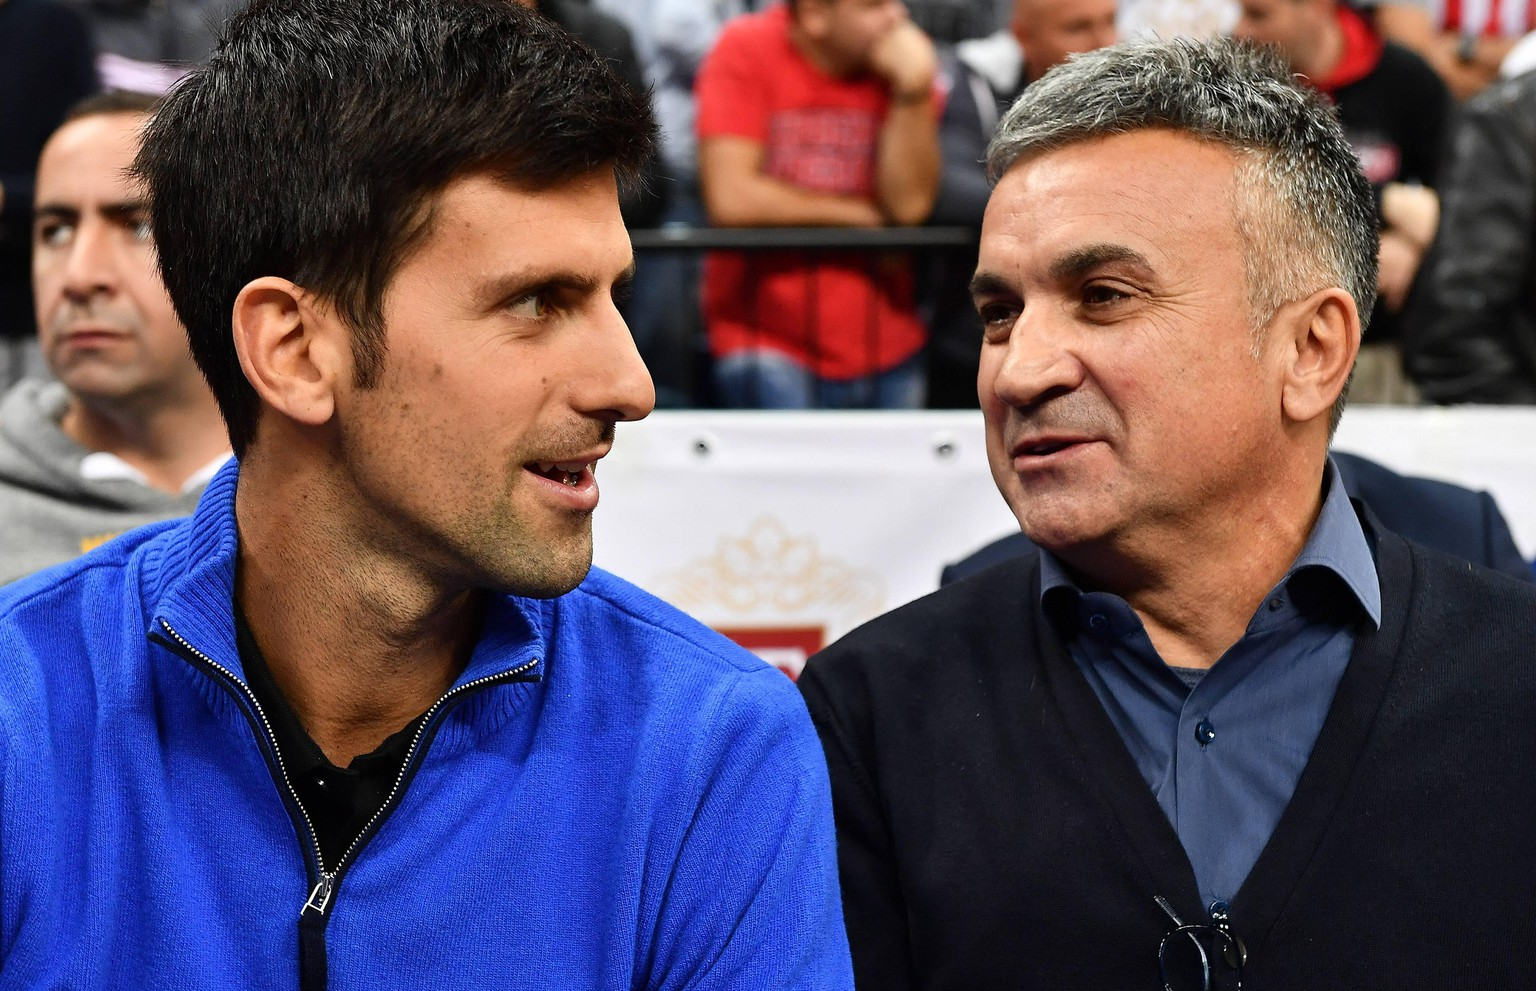 Euroleague, Crvena zvezda MTS Belgrade - CSKA Moscow 15.11.2017., Belgrade, Serbia - Turkish Airlines Euroleague, round 7, Red Star MTS Belgrade - CSKA Moscow. Novak Djokovic with his father Srdjan. PUBLICATIONxINxGERxSUIxAUTxHUNxONLY SrdjanxIlic/PIXSELL